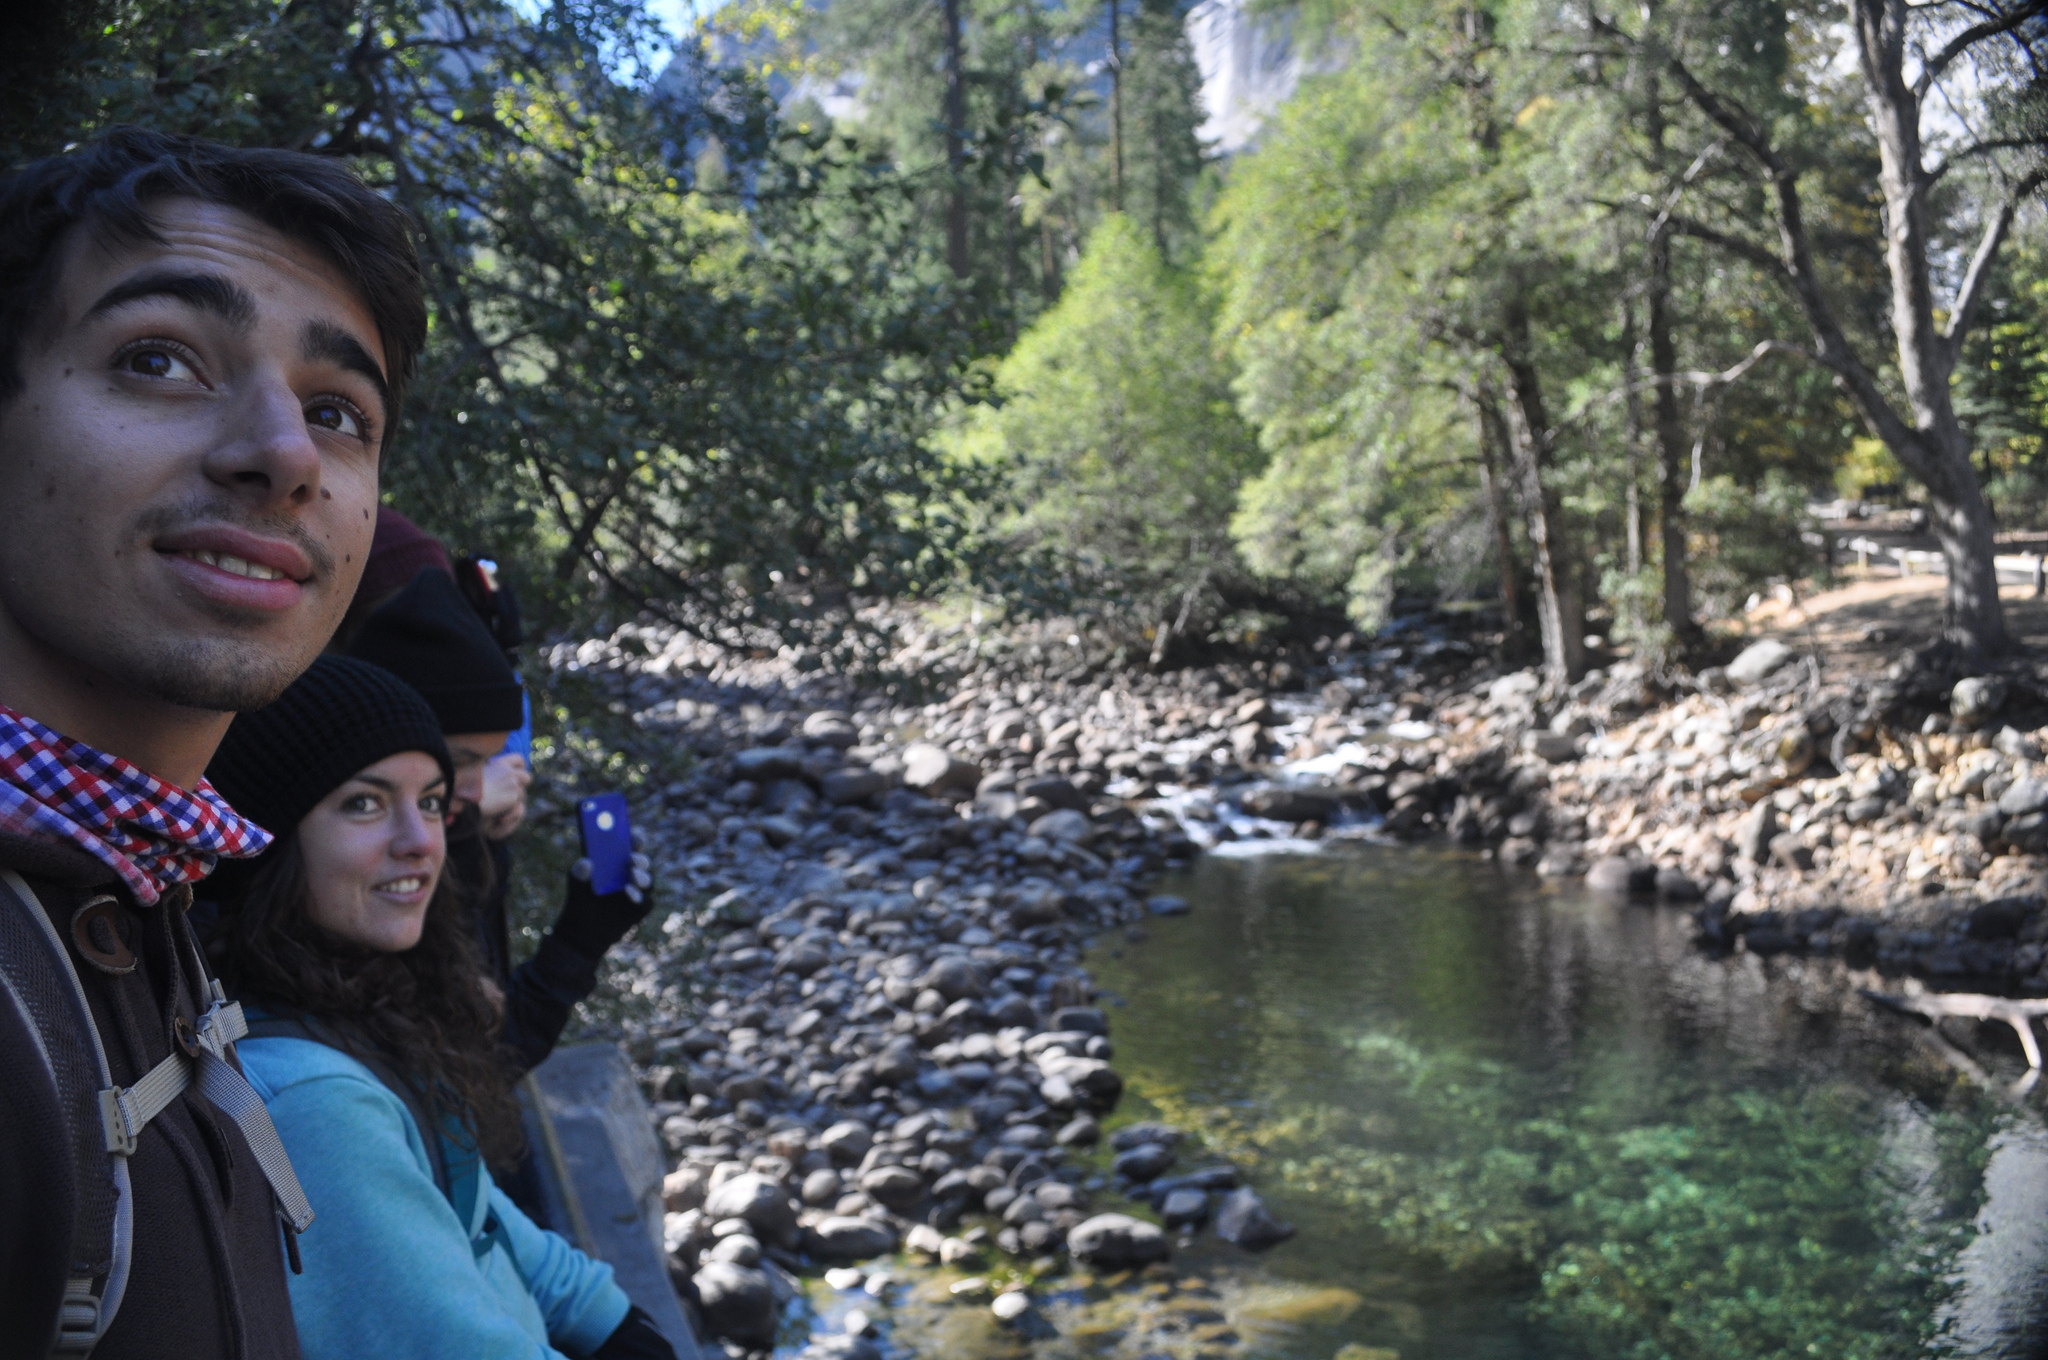 Students on Yosemite trip